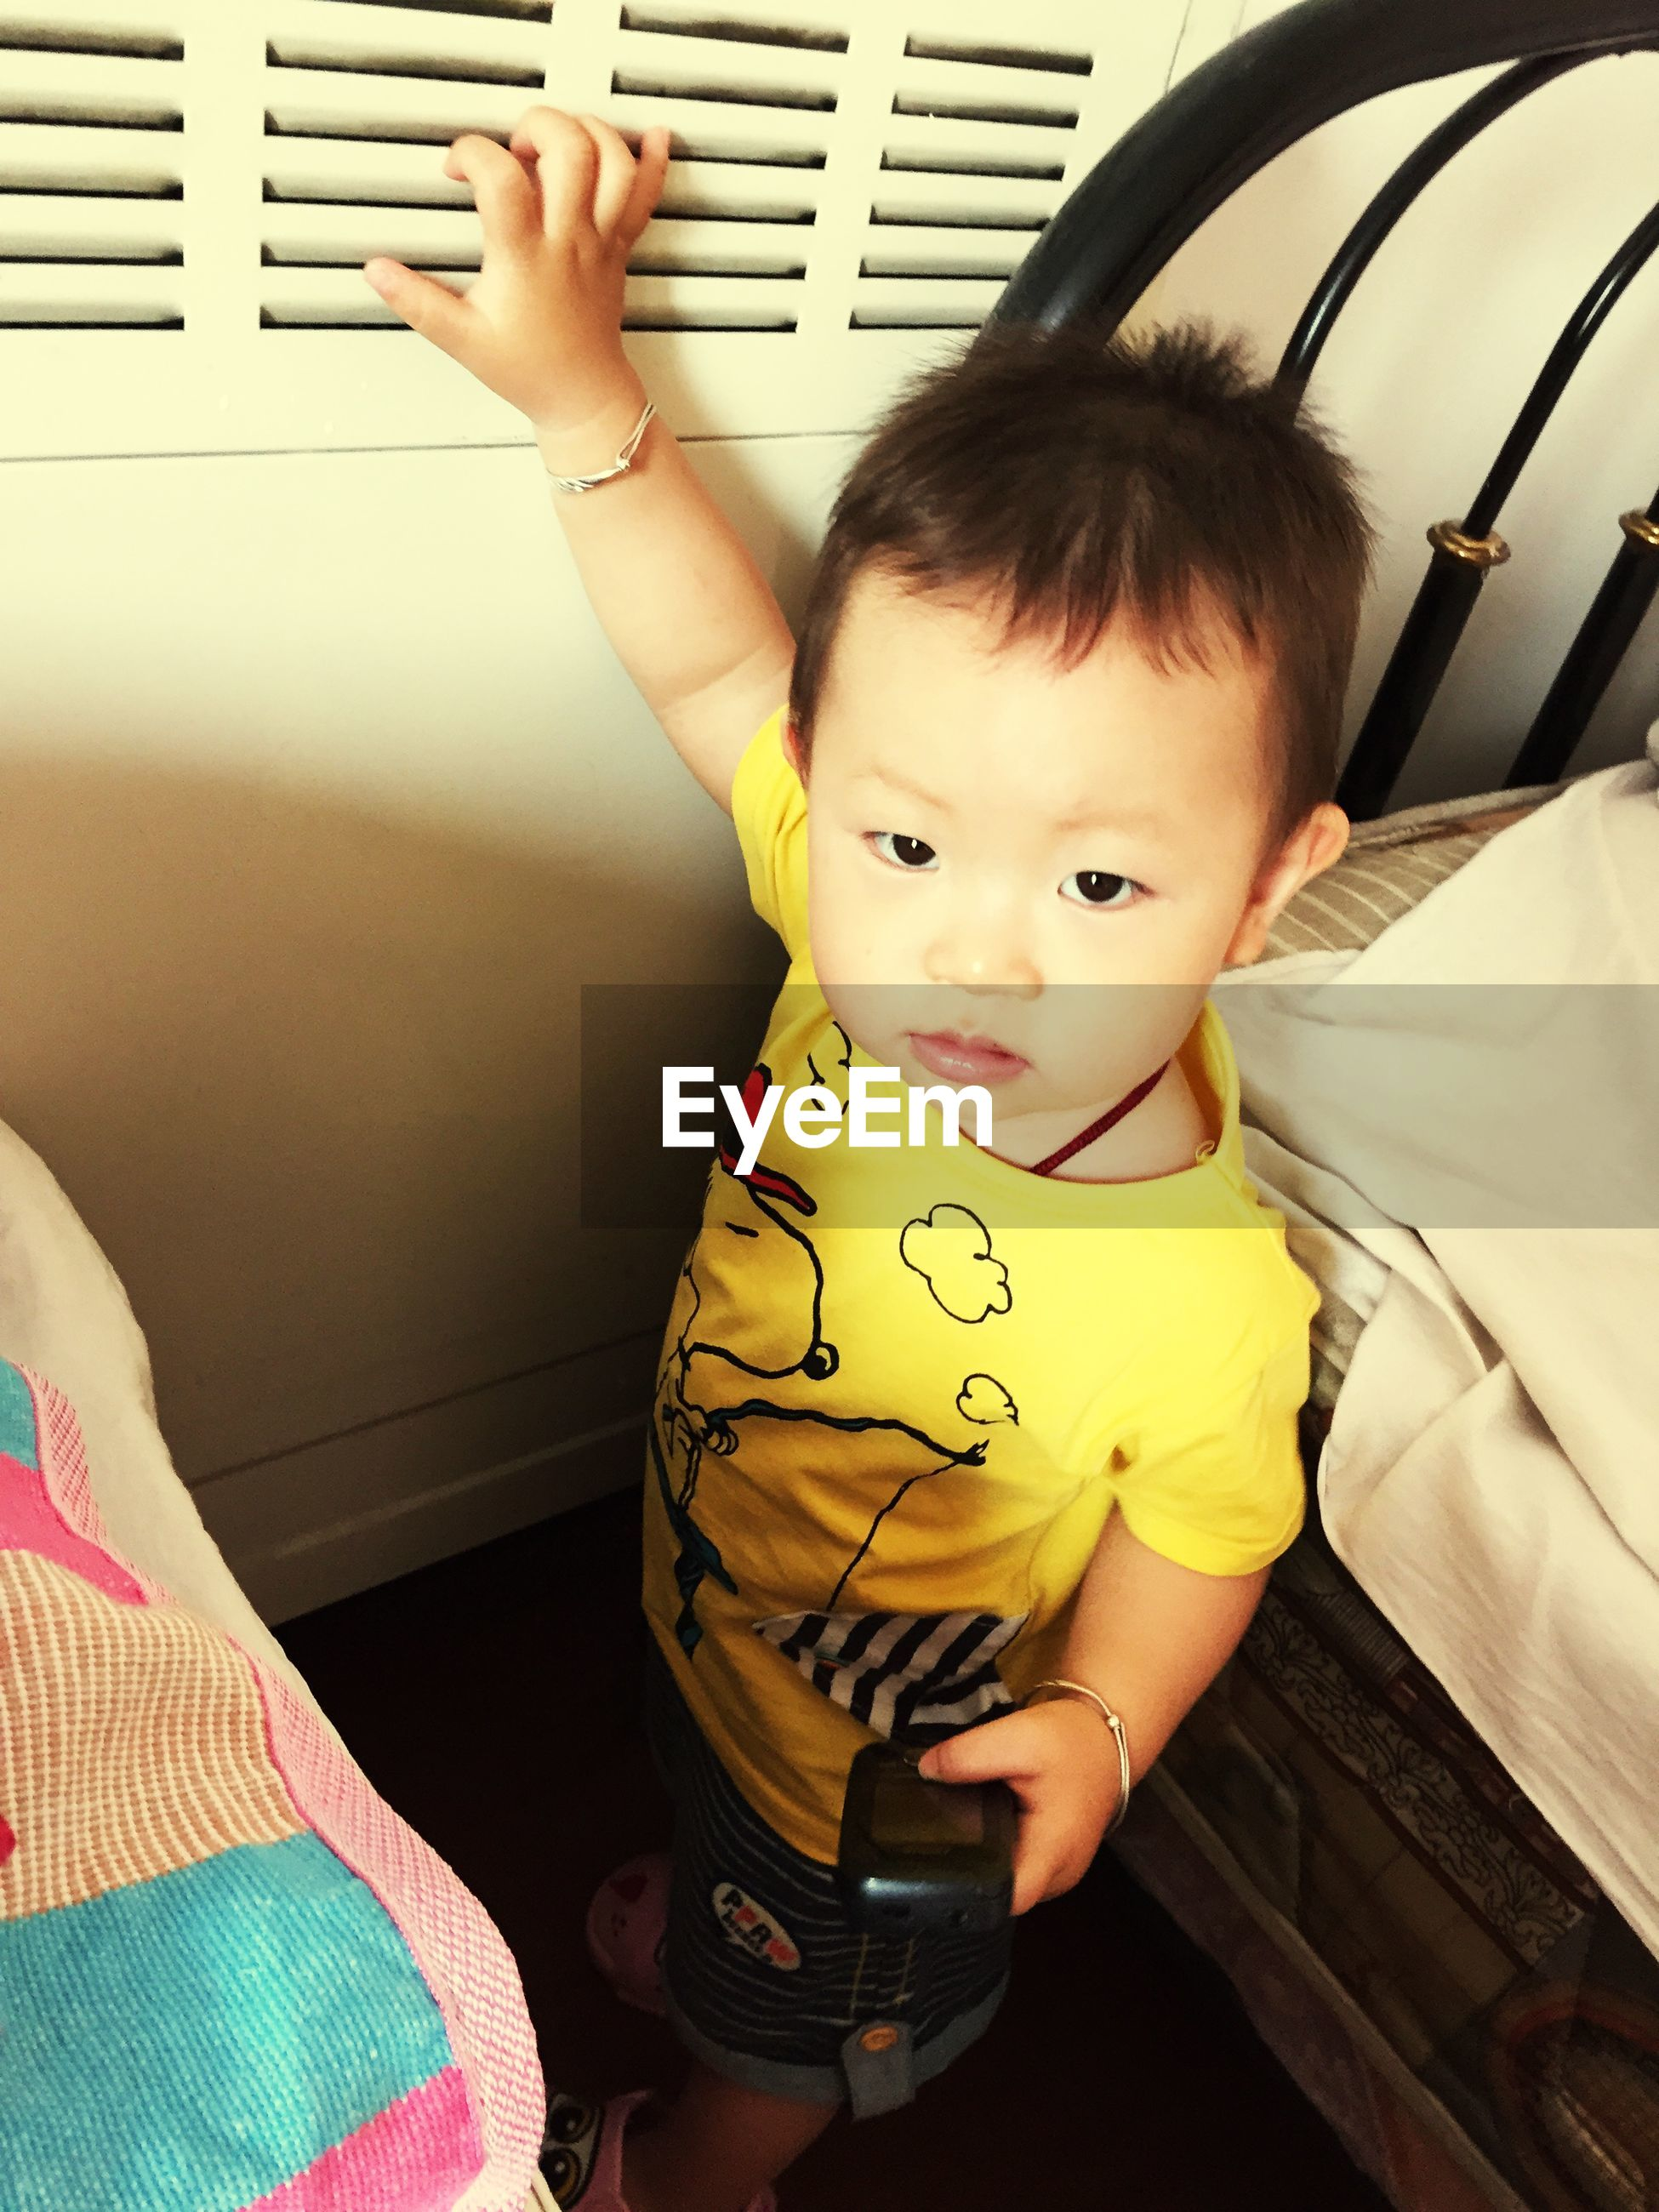 childhood, lifestyles, cute, elementary age, person, indoors, leisure activity, innocence, boys, high angle view, casual clothing, holding, girls, sitting, toddler, looking at camera, three quarter length, baby